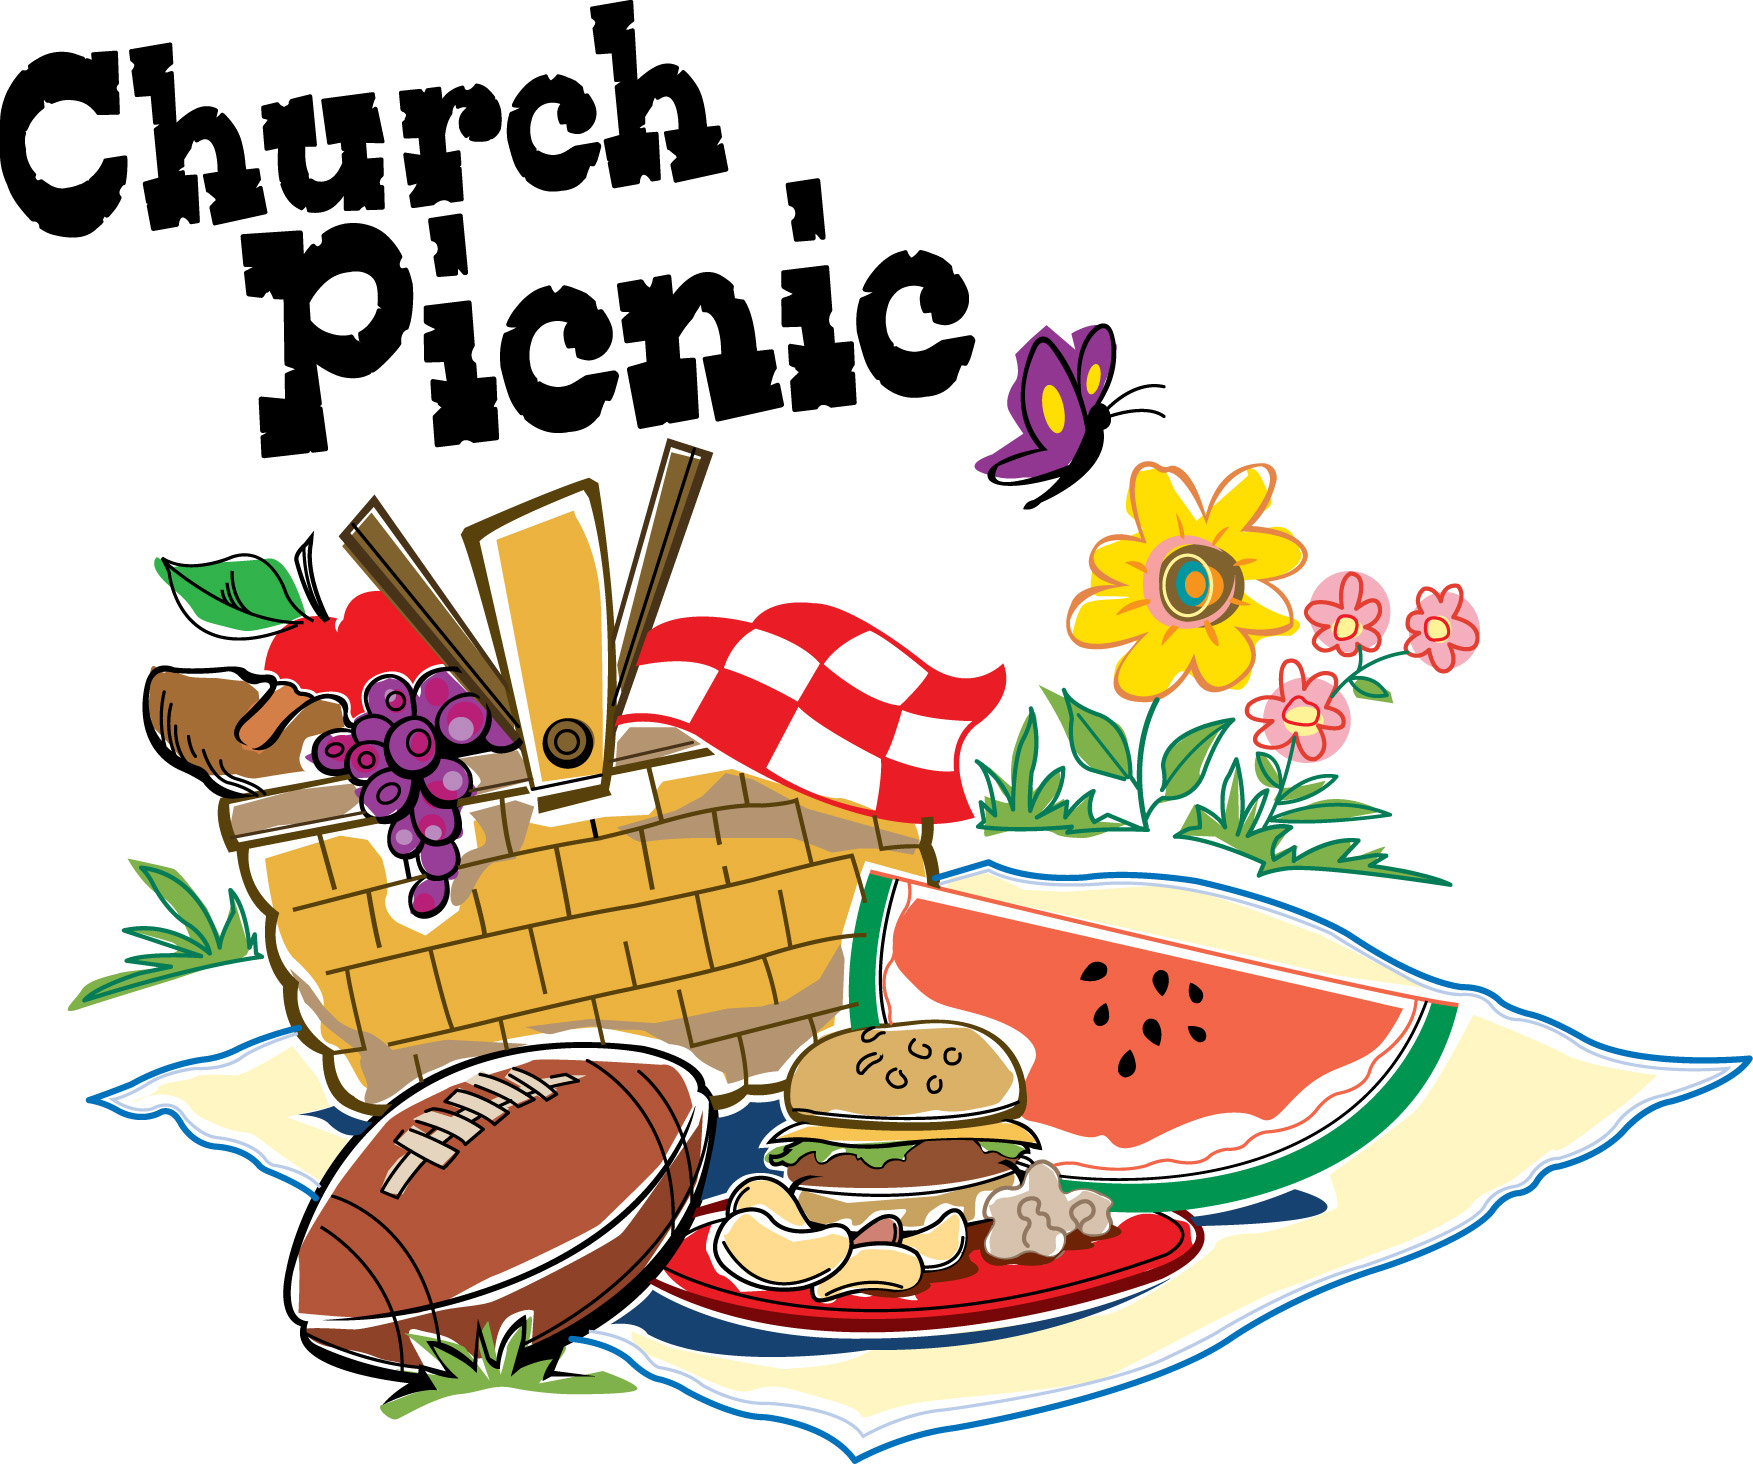 picnic table clipart at getdrawings com free for personal use rh getdrawings com picnic clipart png picnic clipart black and white